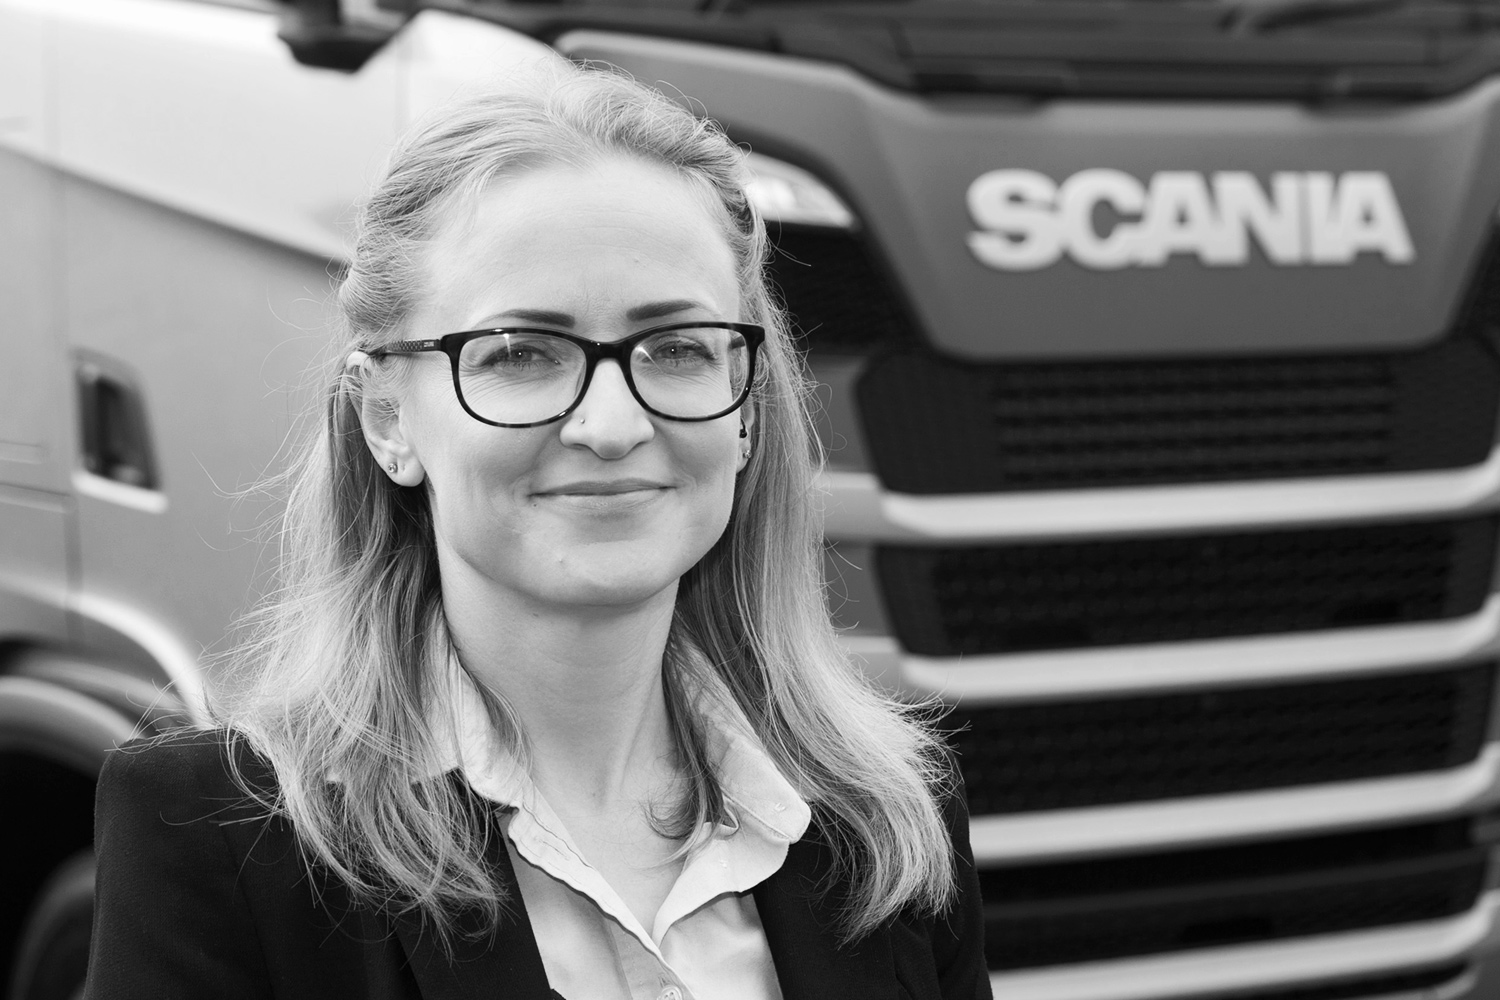 Headshot photography for Scania dealer by  Thetford PR photographer Keith Mindham